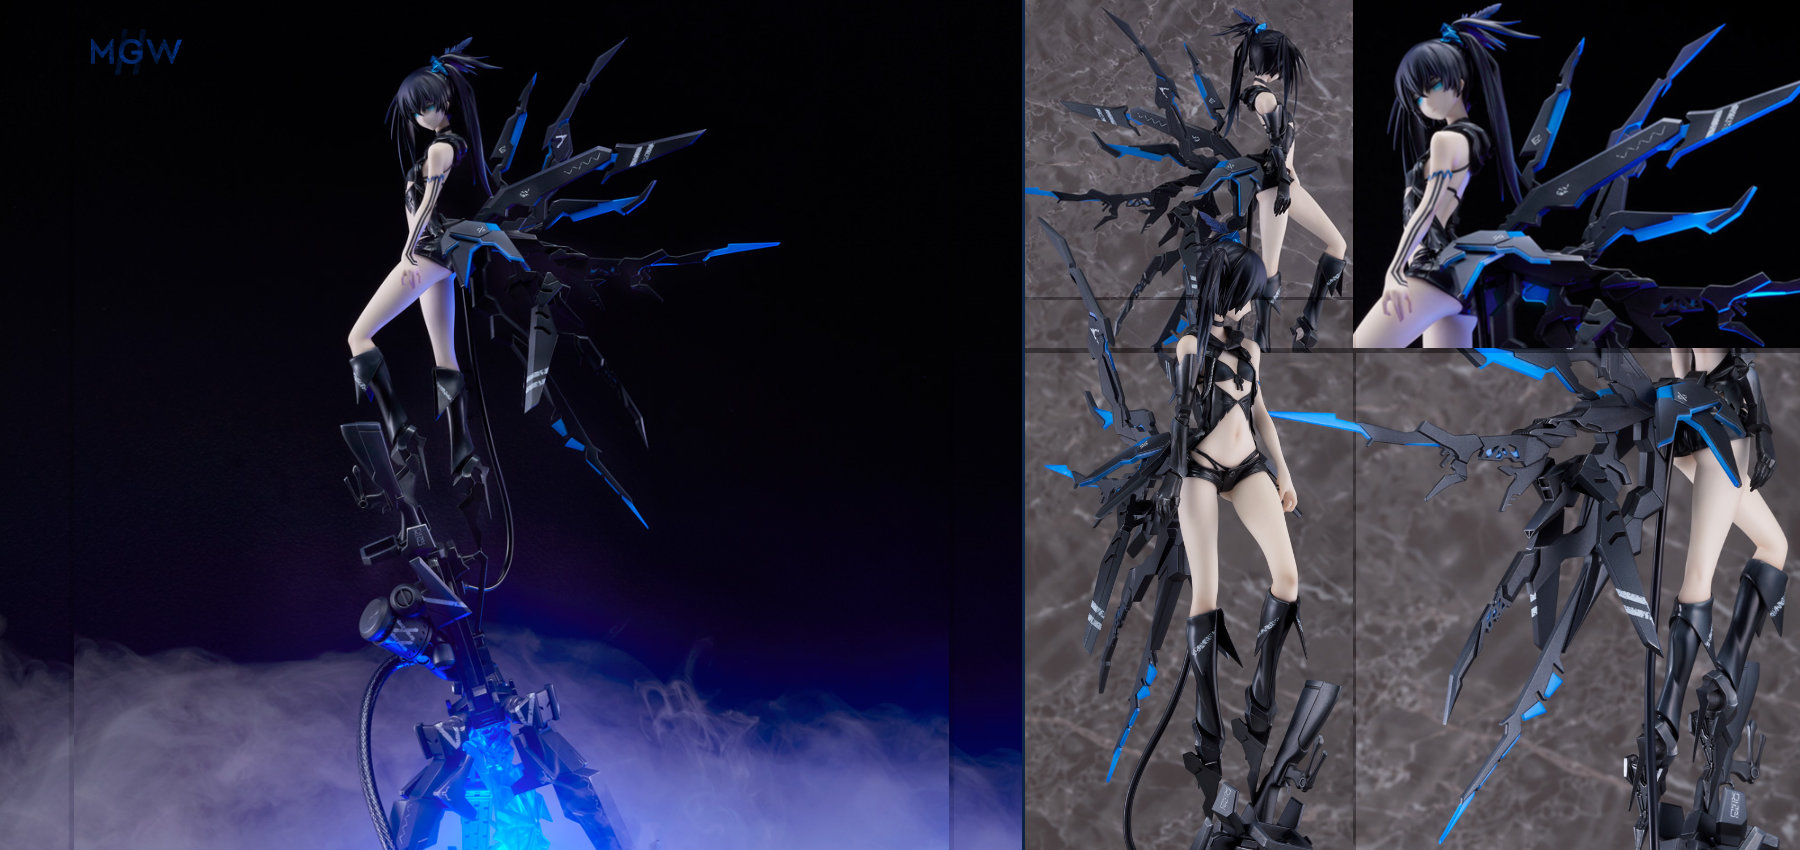 BLACK ROCK SHOOTER Black Rock Shooter inexhaustible Ver. by Good Smile Company MyGrailWatch Anime Figure Guide